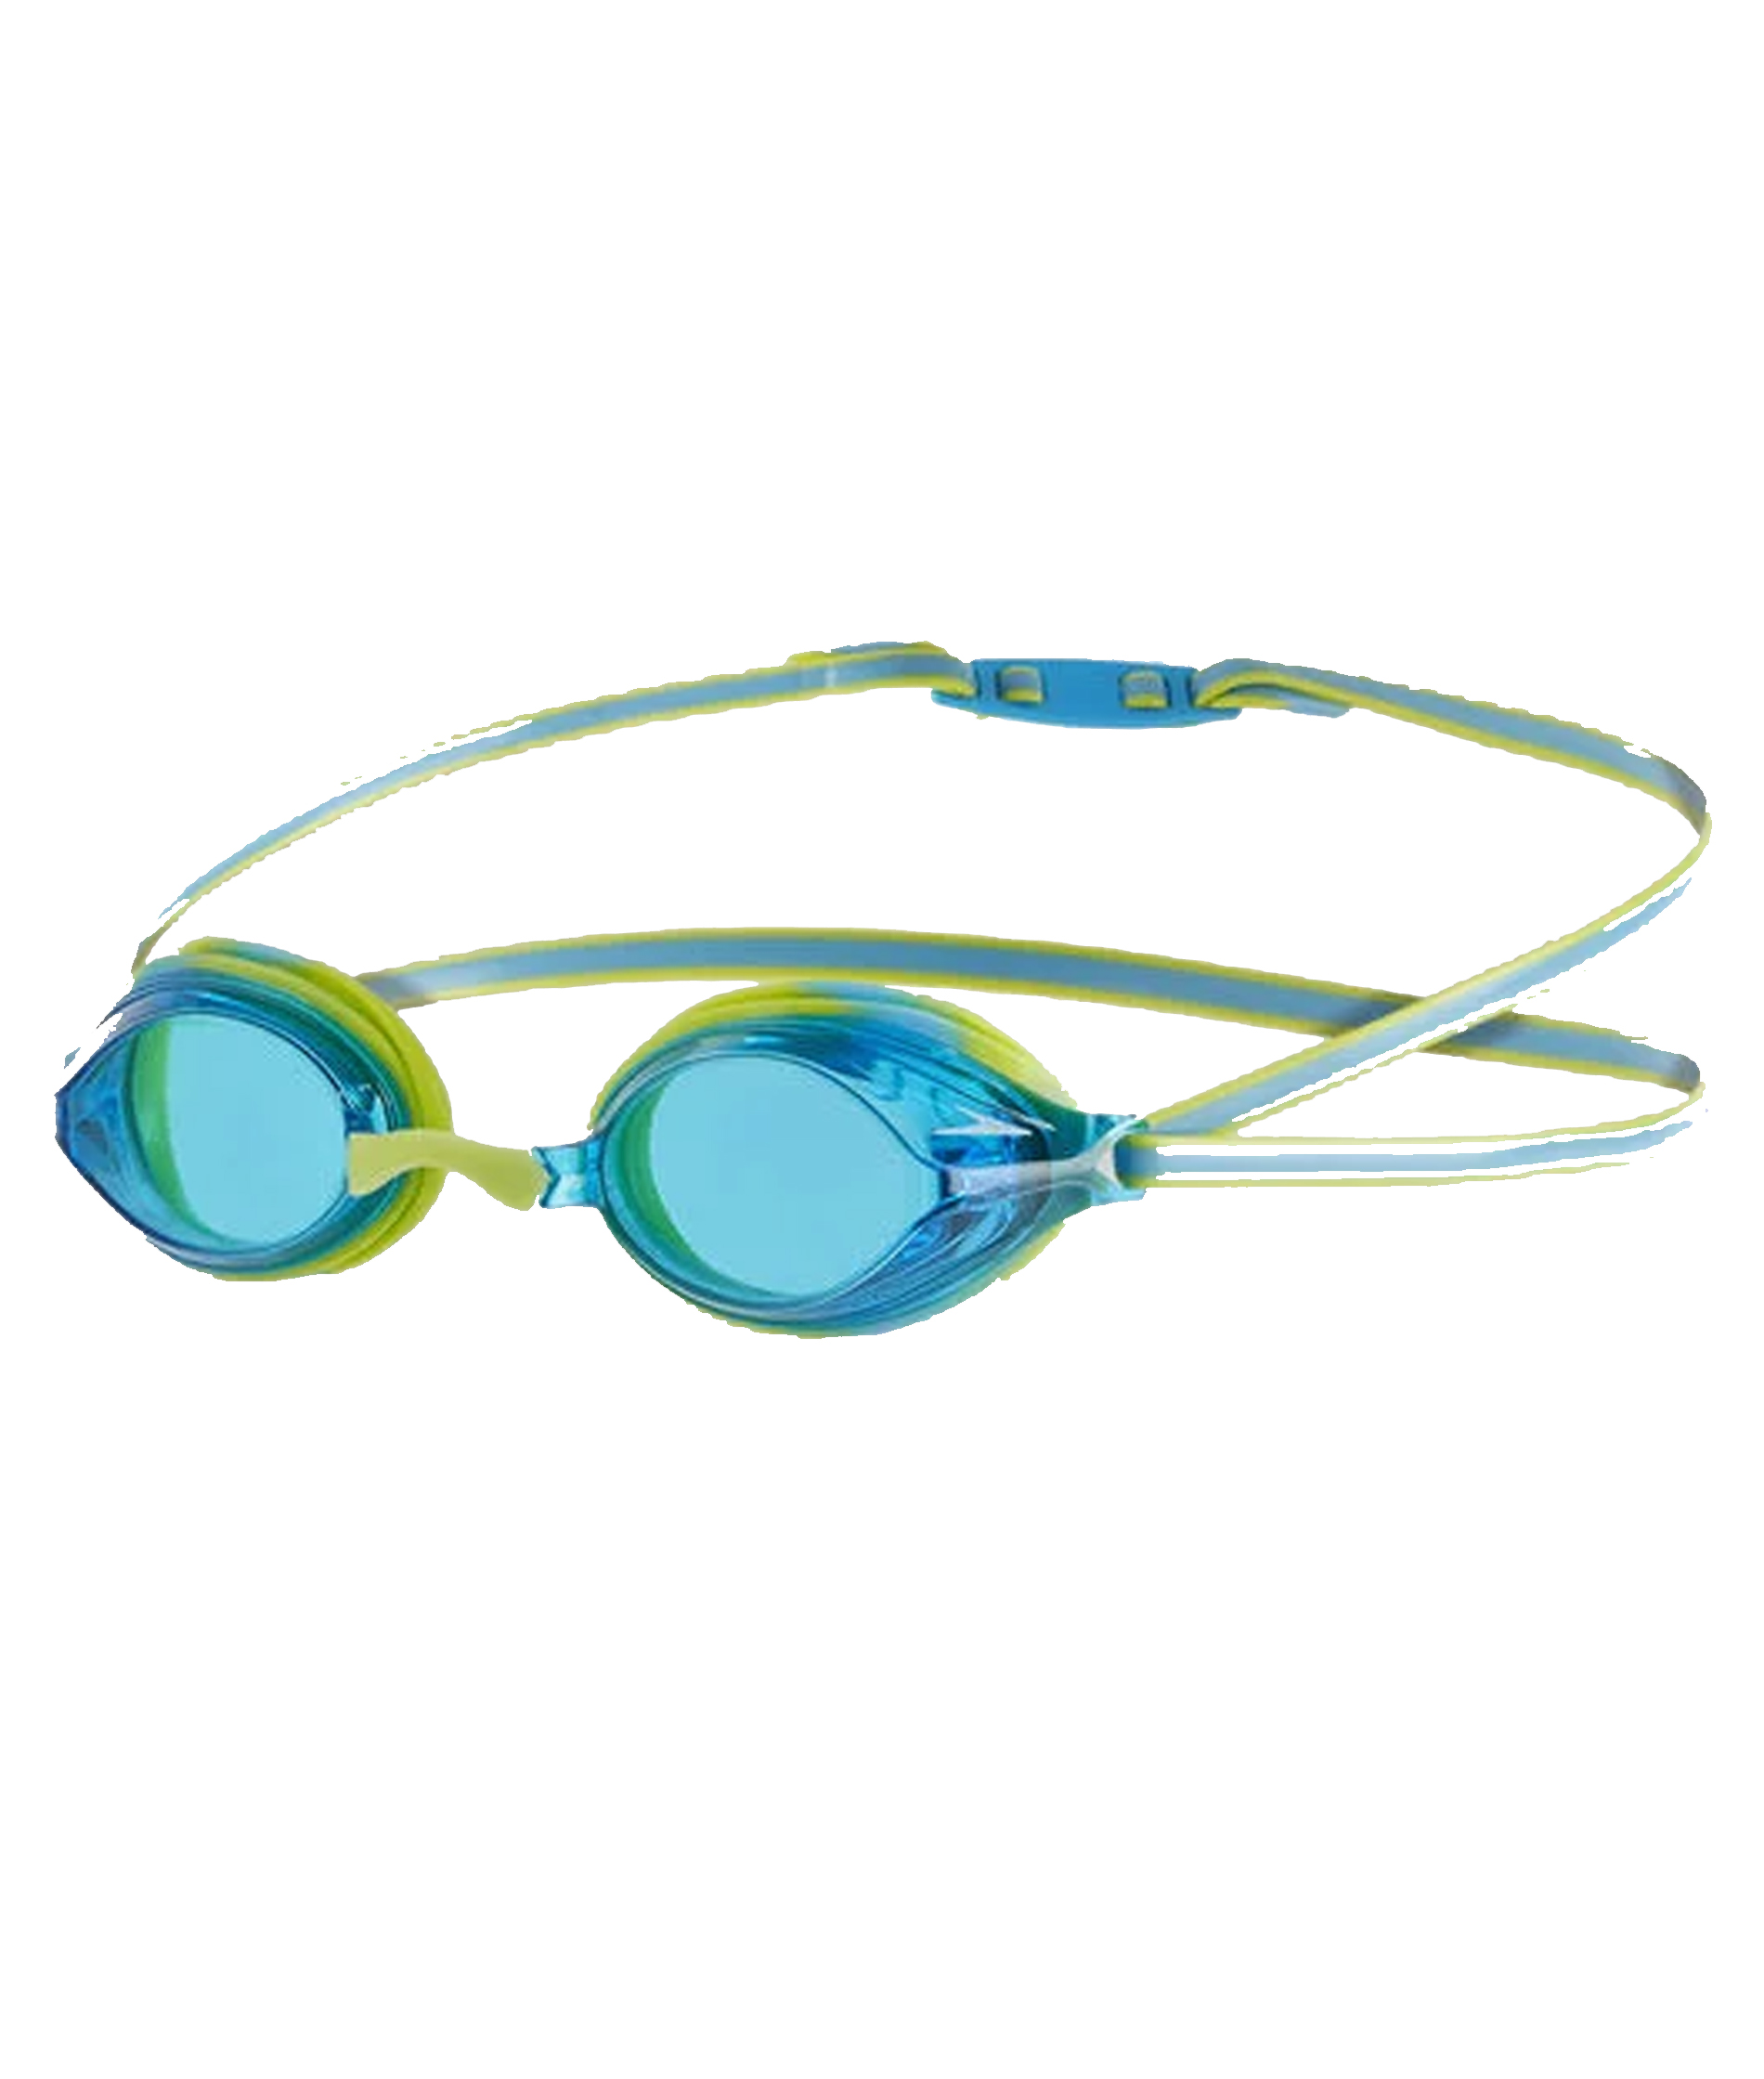 Speedo Junior Vengeance Goggle - Green/Blue